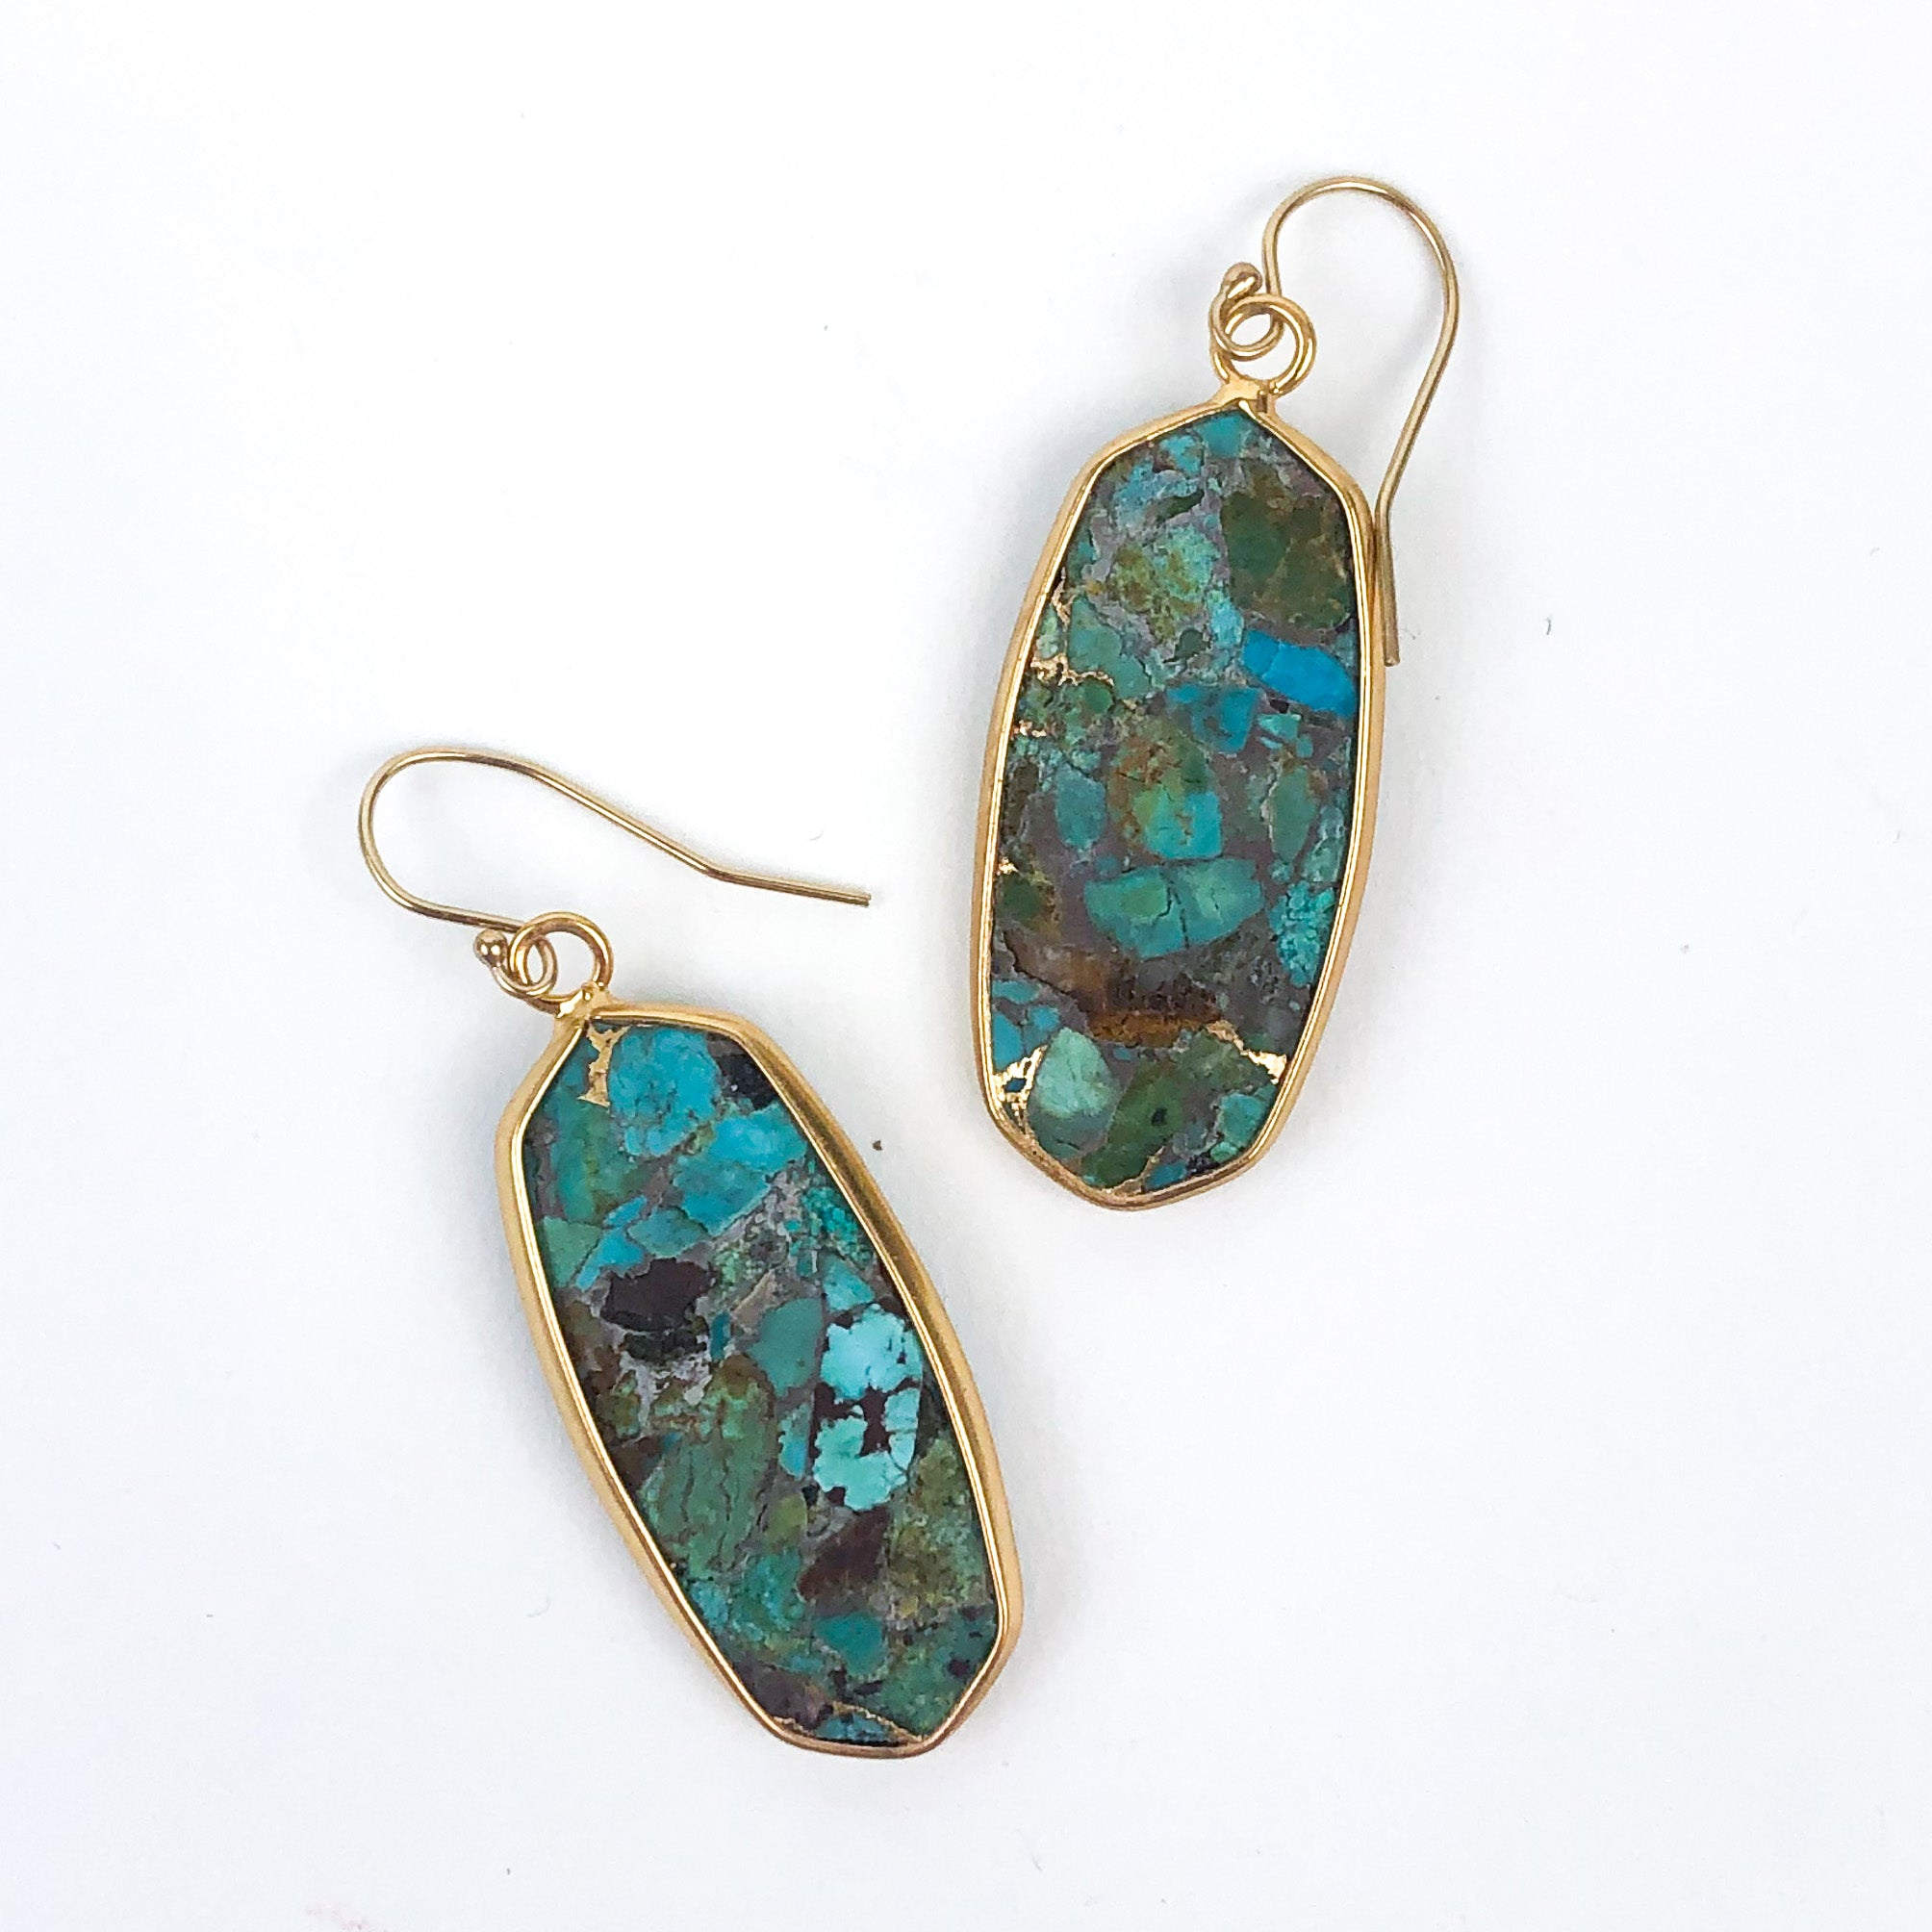 Leslie Francesca - Turquoise Gold Oval Drop Earrings